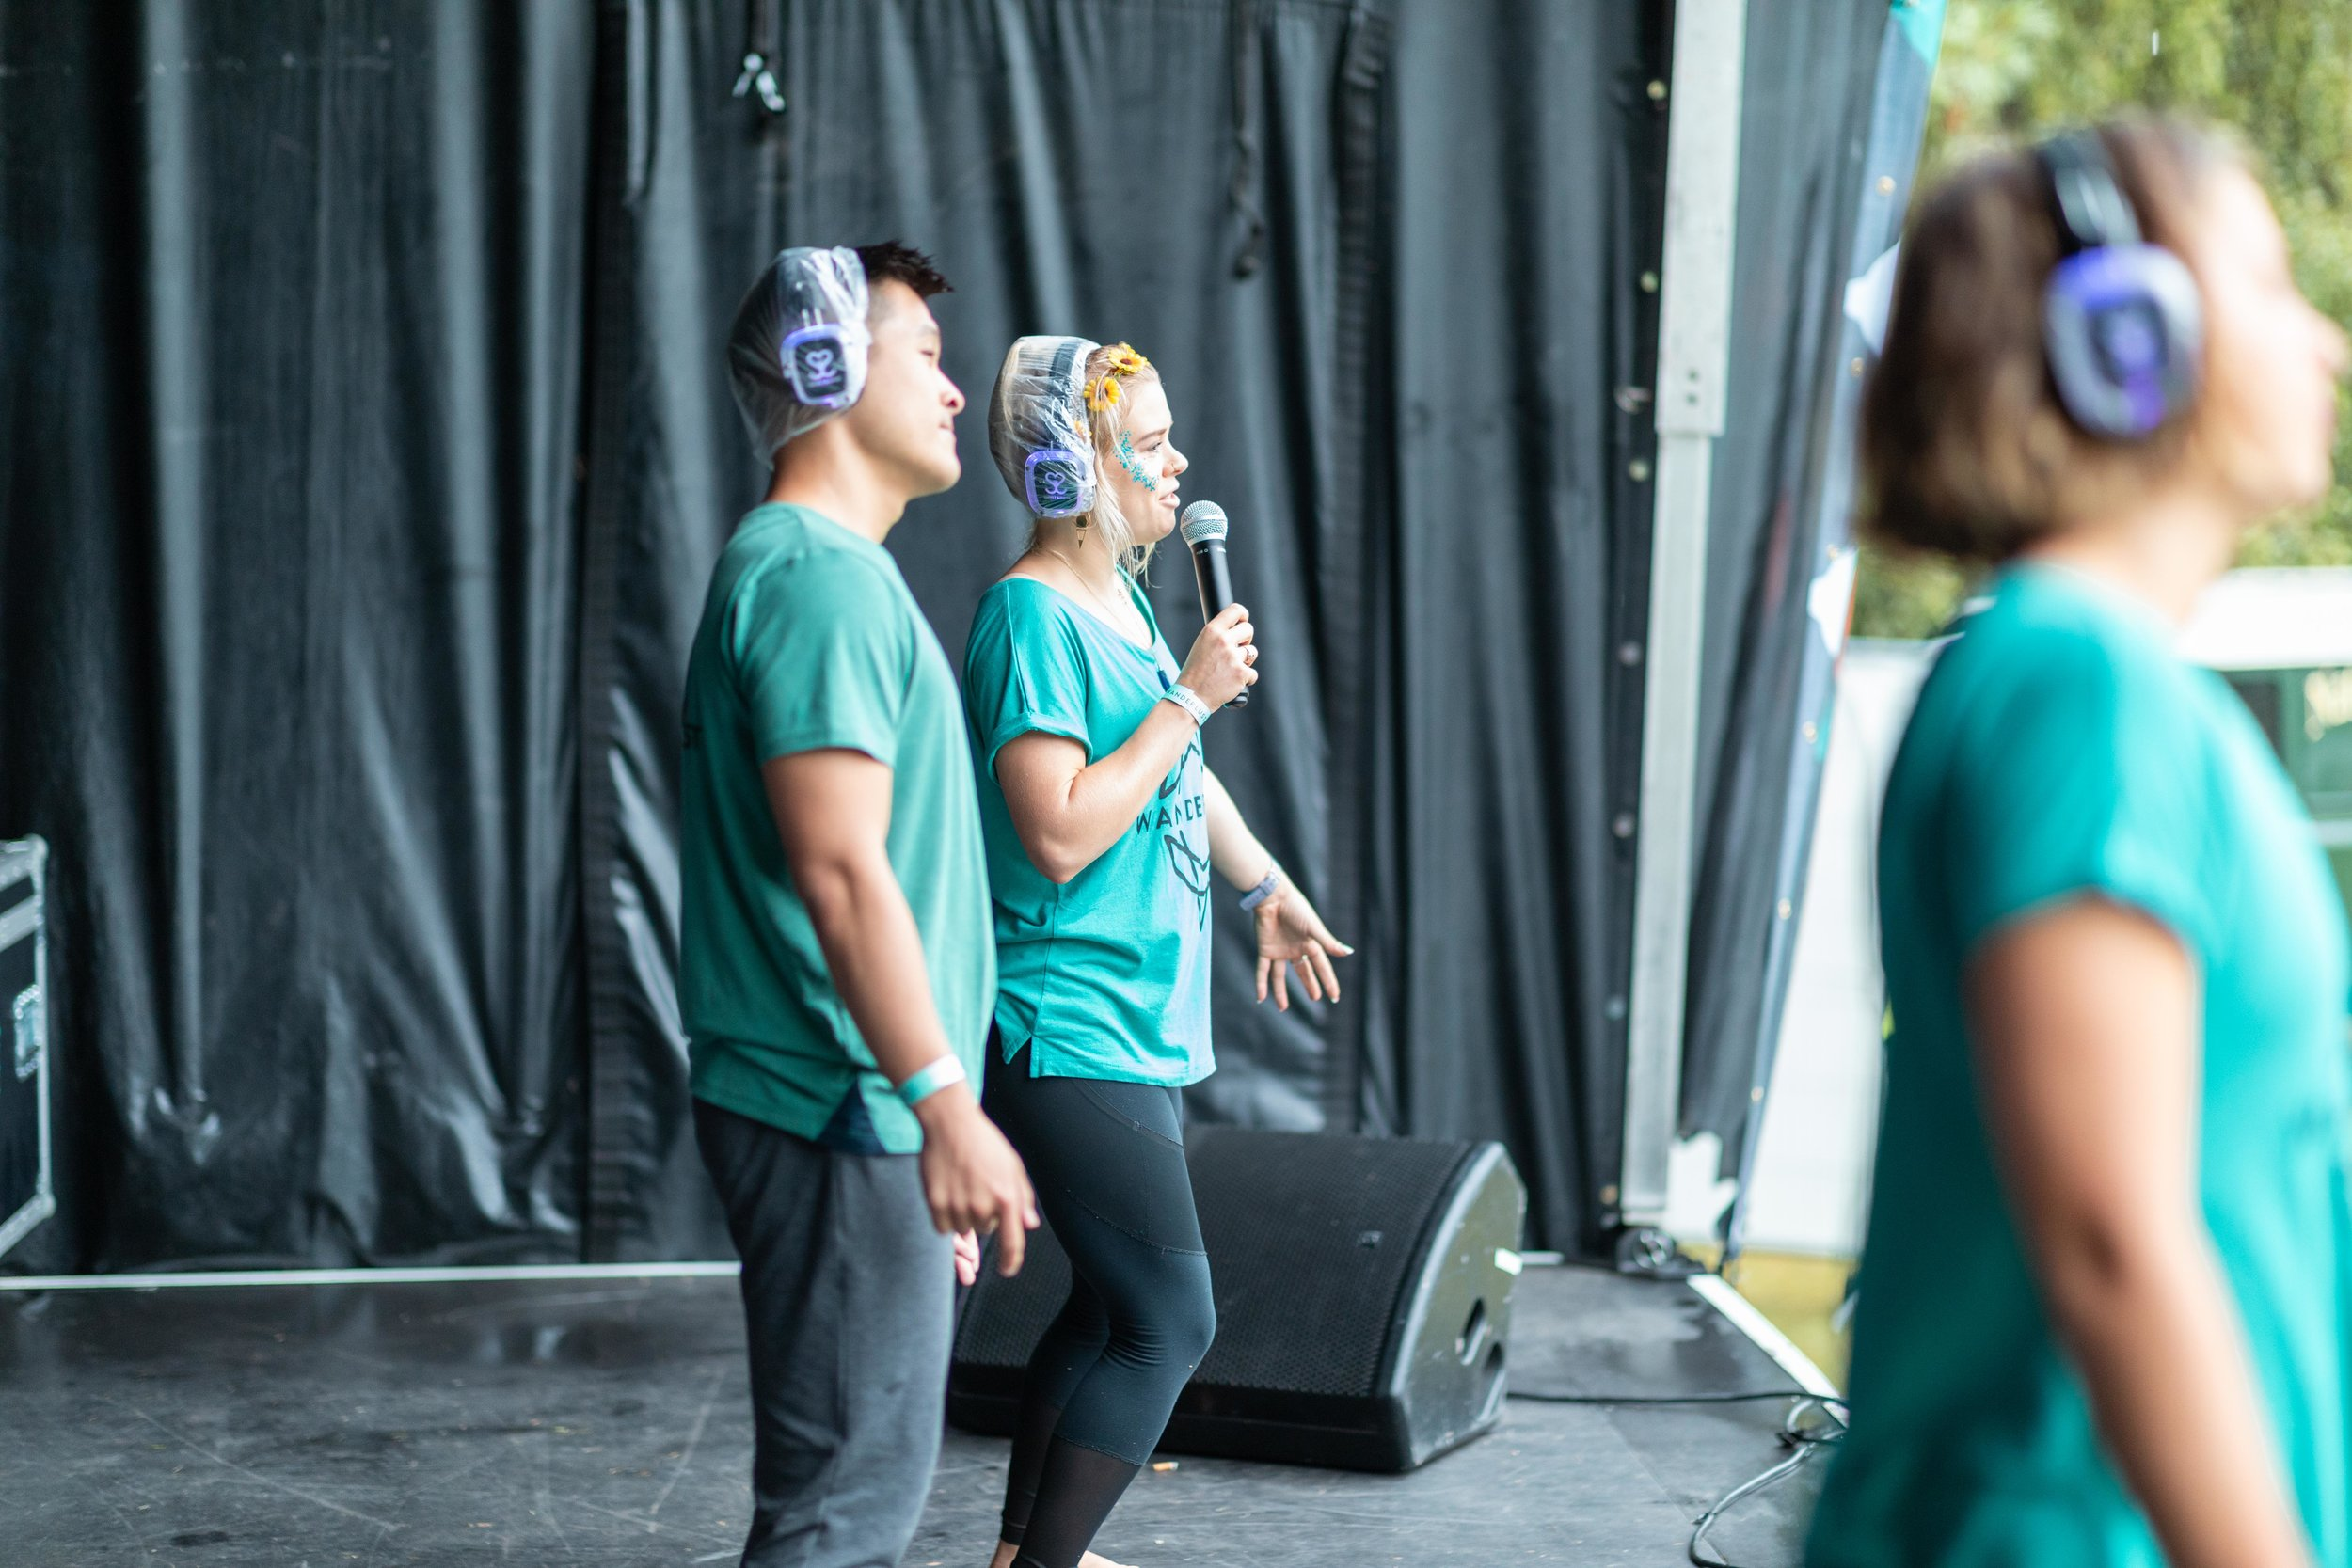 Opening up Wanderlust 108 Festival in London, August 2019 on the mainstage with David Kam and Margot De Broglie - Secret Sunrise Guided Dance